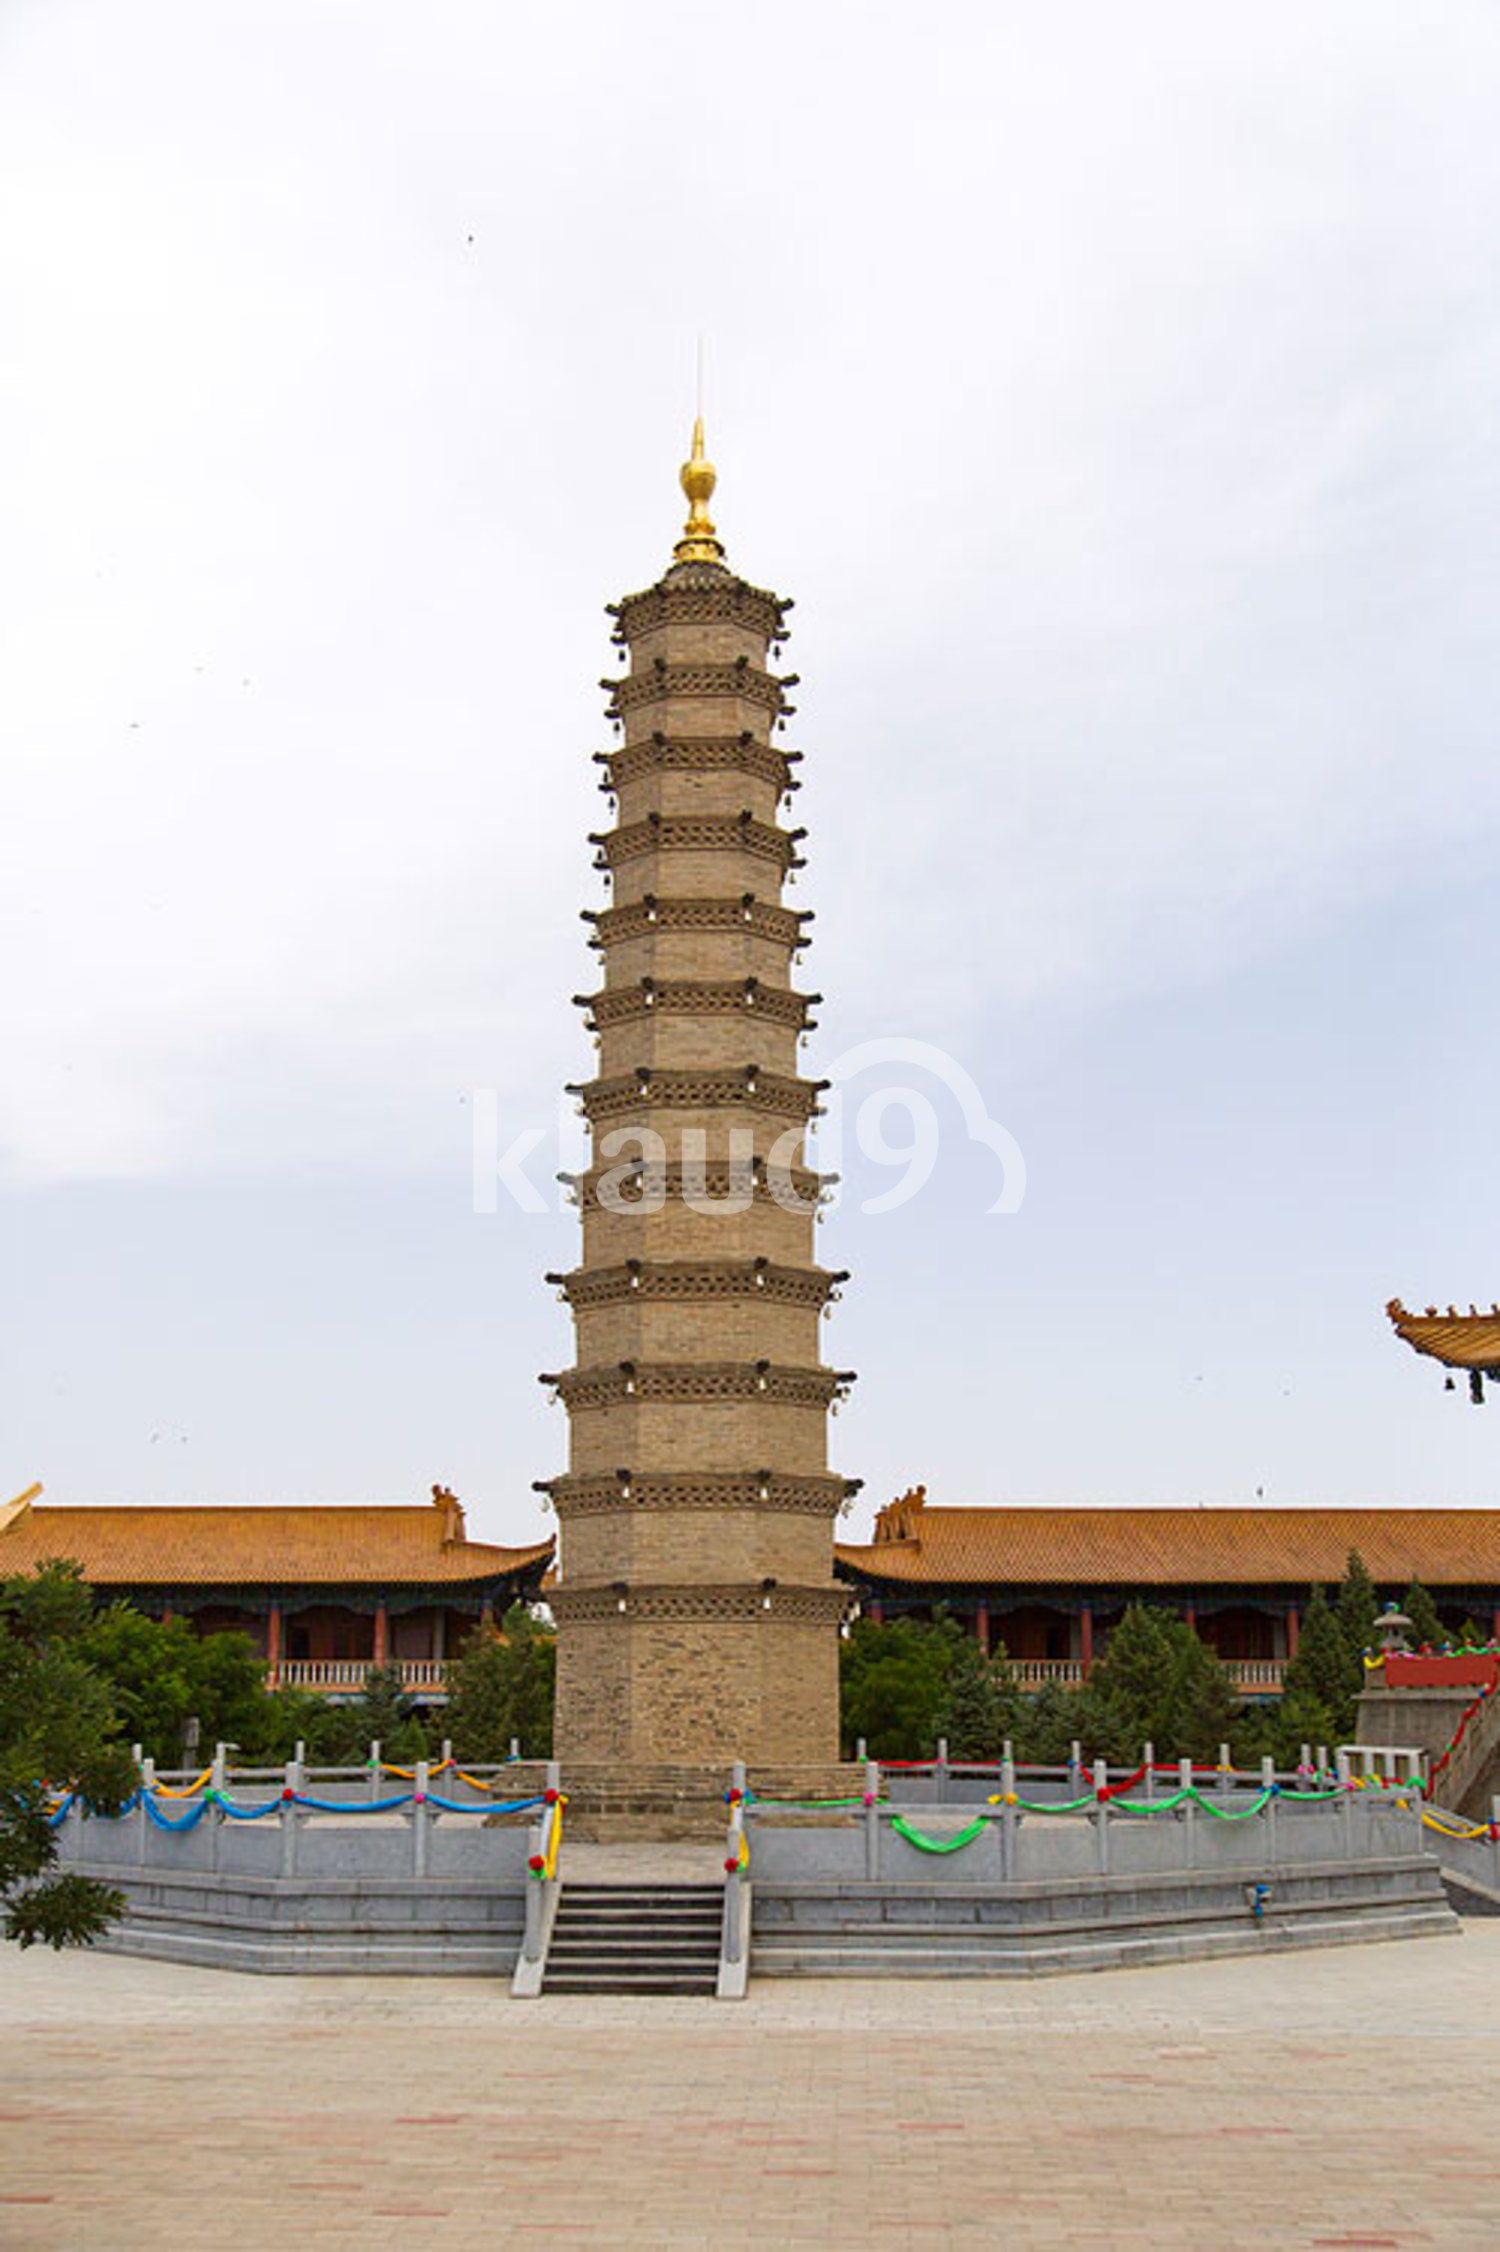 Luoshi Temple in Gansu province, China